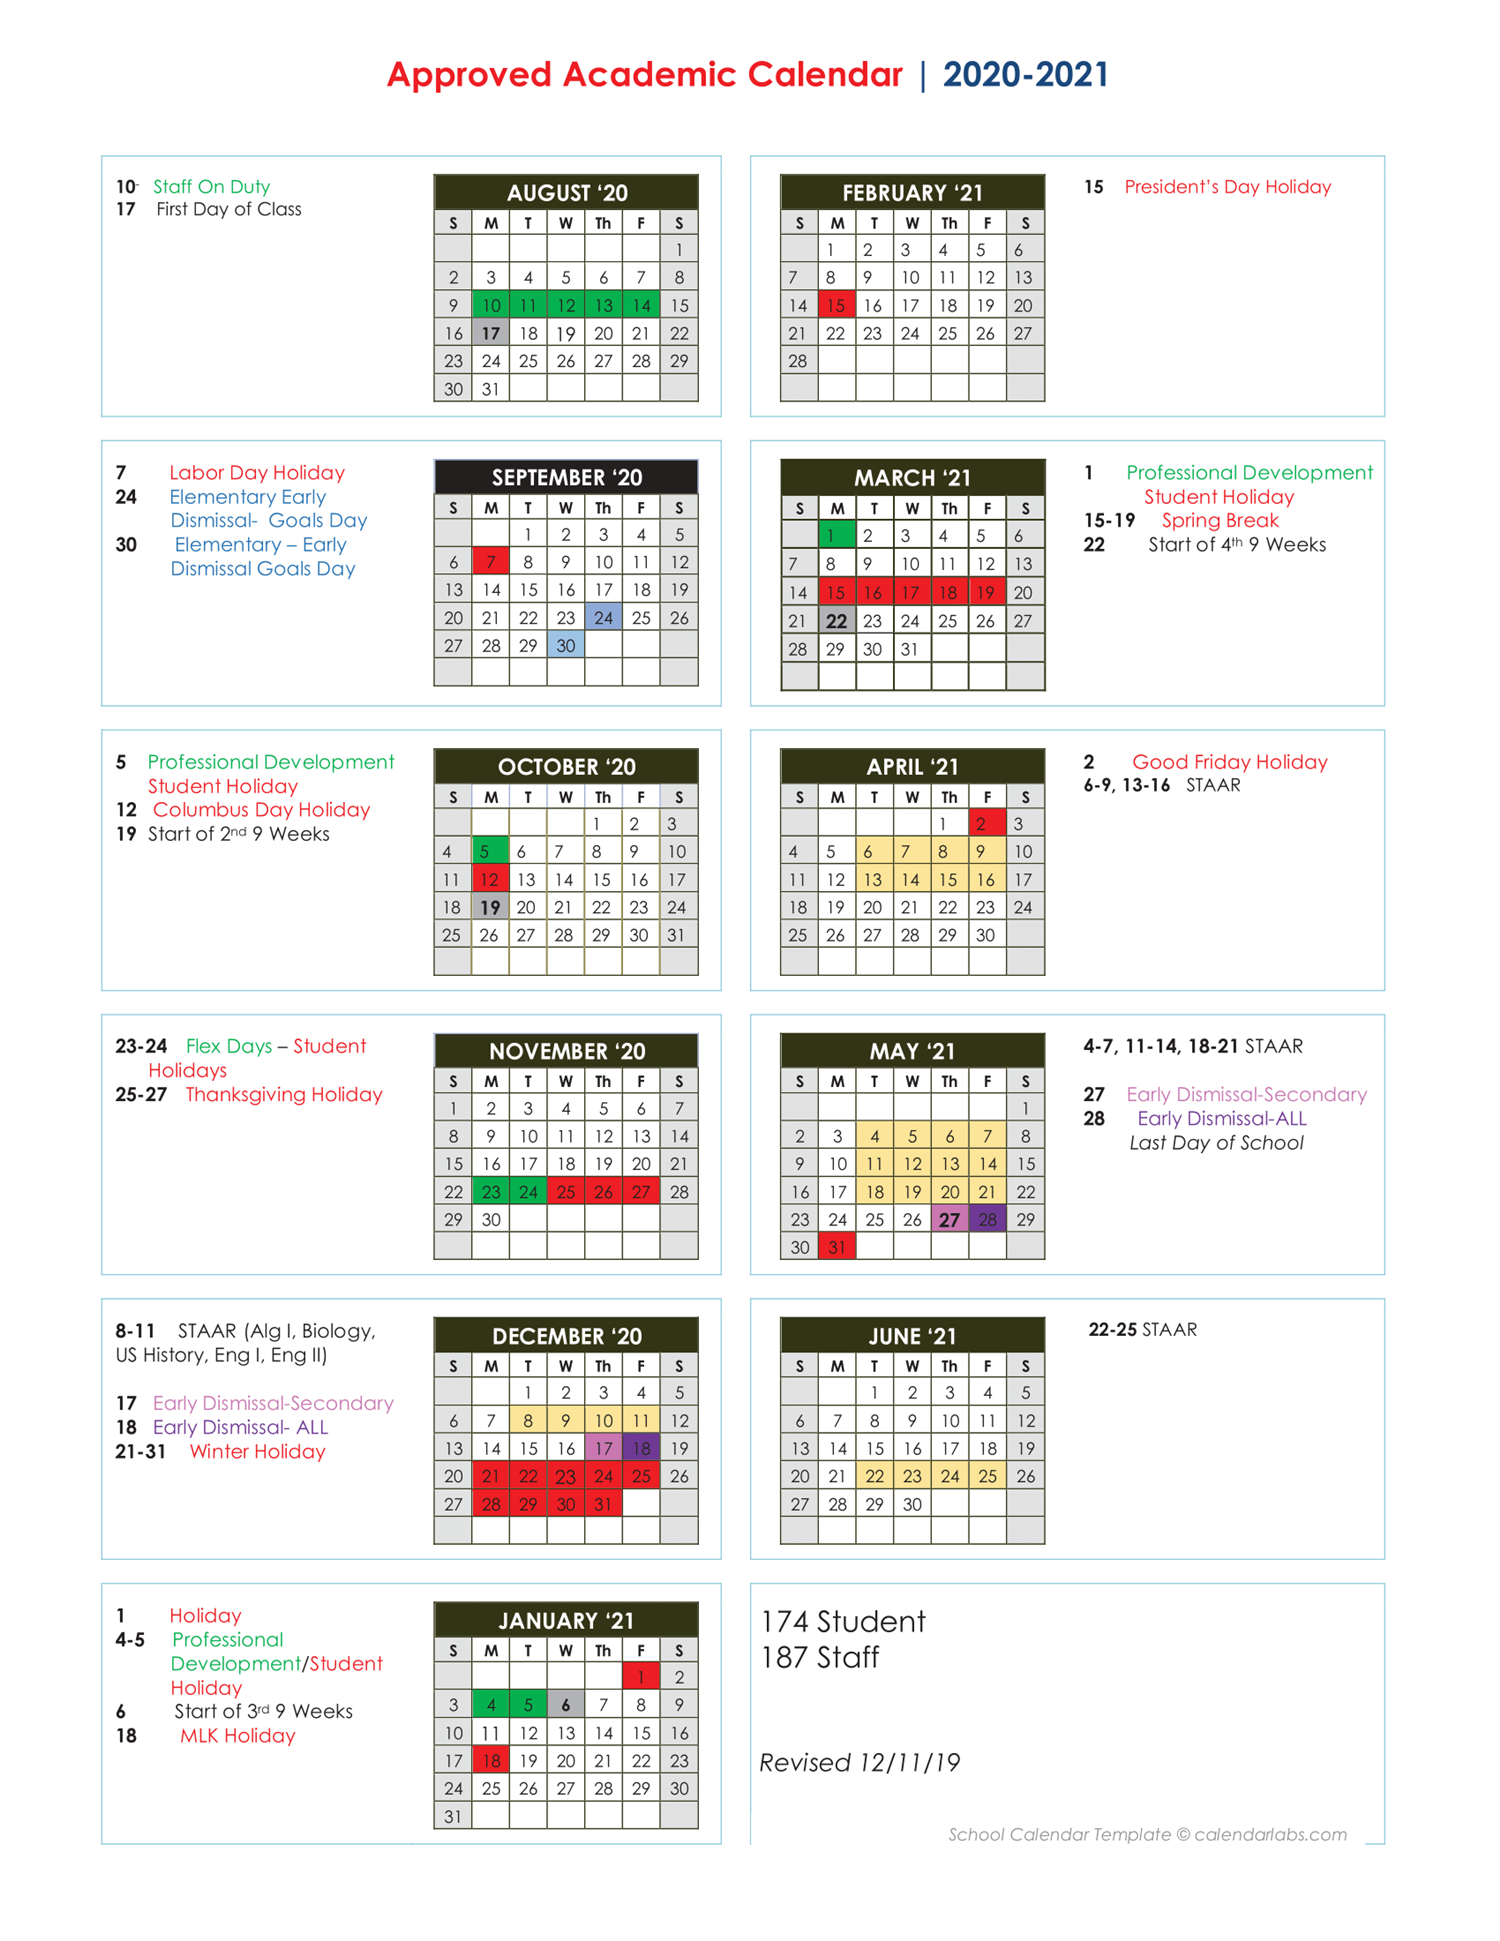 Approved Academic Calendar 2020-2021